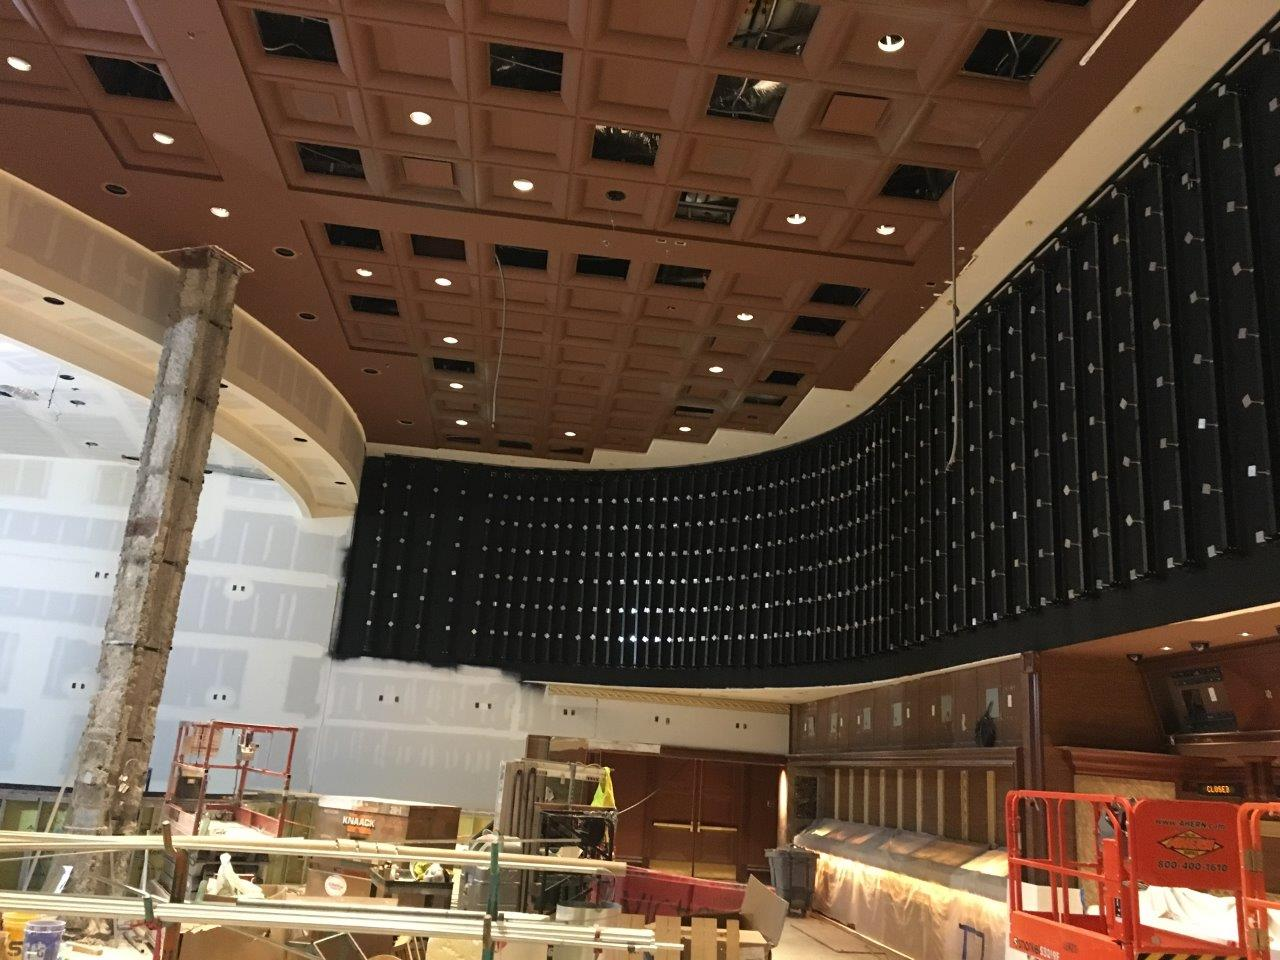 The LED wall had to follow the contour of the original sportsbook, which entailed two roughly 90-degree turns, each with a slightly different degree of radius.